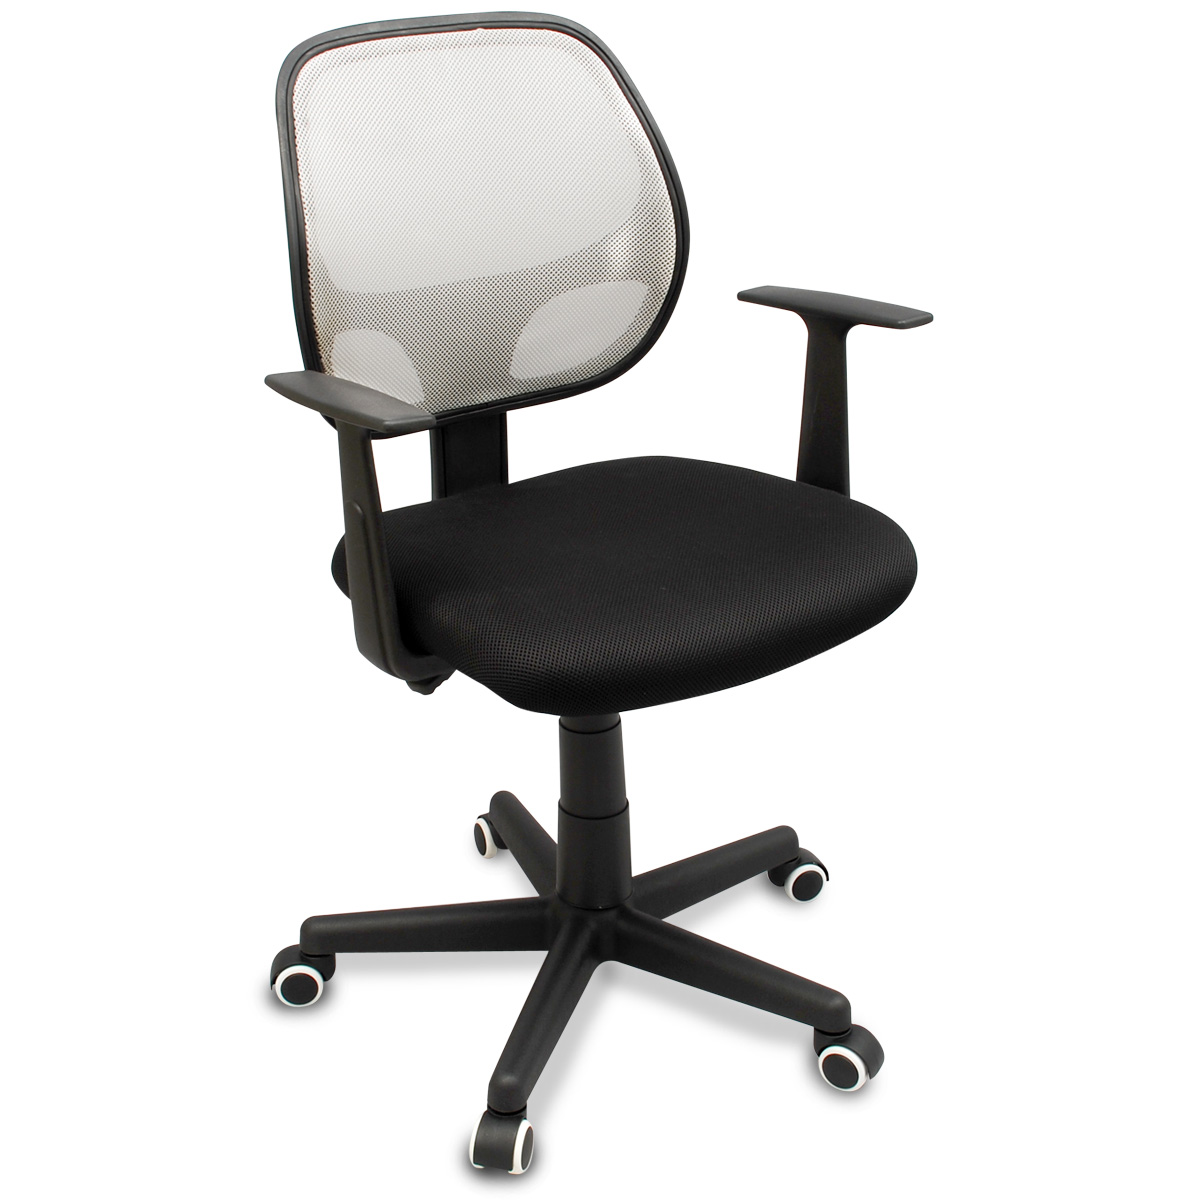 modern mesh ergonomic office task chair with rubber anti scuff wheels